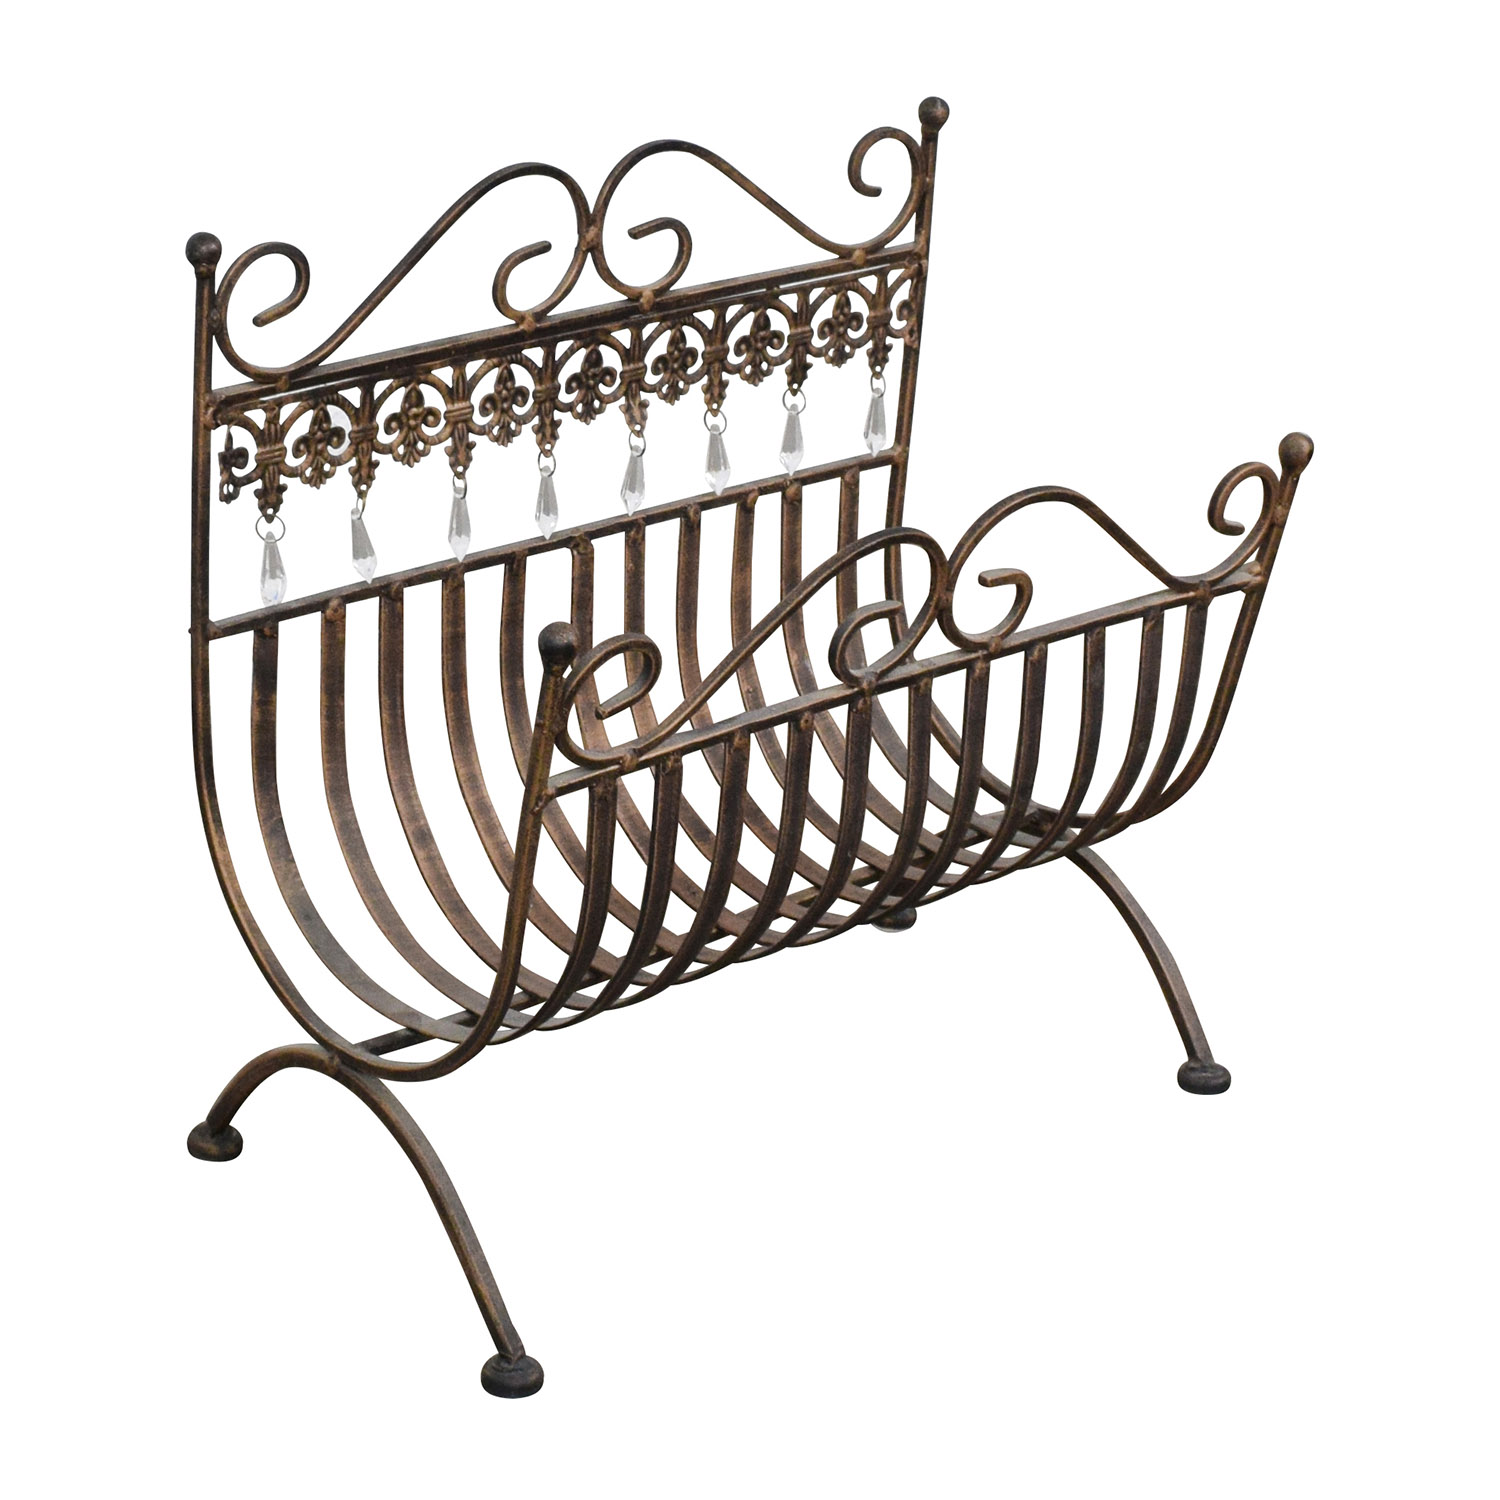 Etsy Vintage Rustic Brass Magazine Rack dimensions